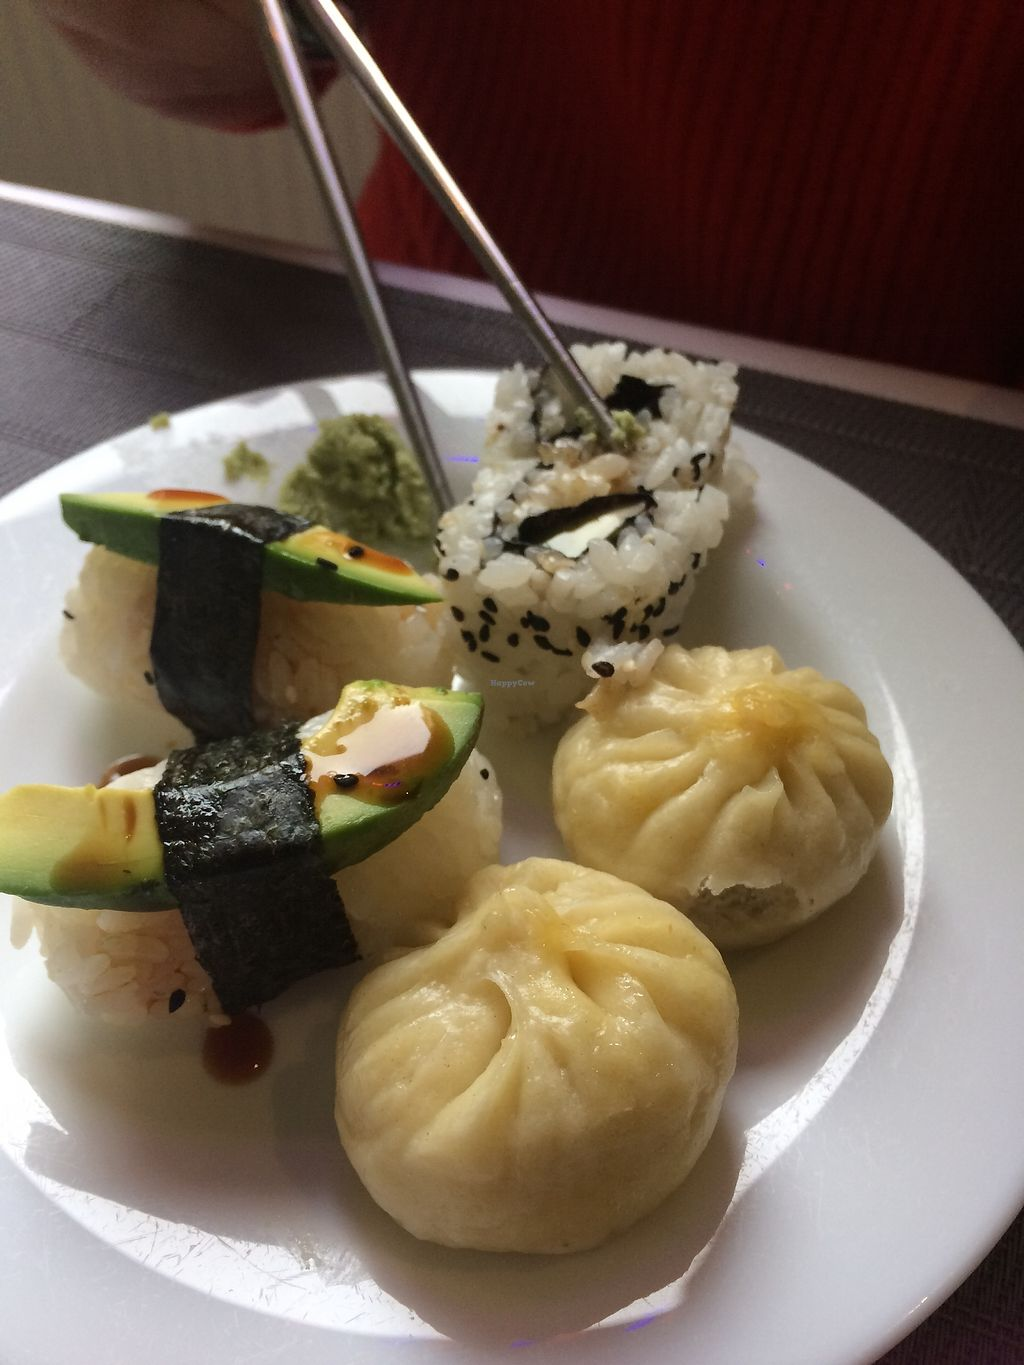 """Photo of Vegetasia  by <a href=""""/members/profile/AnetaB%C3%A1rtov%C3%A1"""">AnetaBártová</a> <br/>Great sushi and dumplings! My friend who isn't vegan really enjoyed this <br/> December 31, 2017  - <a href='/contact/abuse/image/579/341289'>Report</a>"""